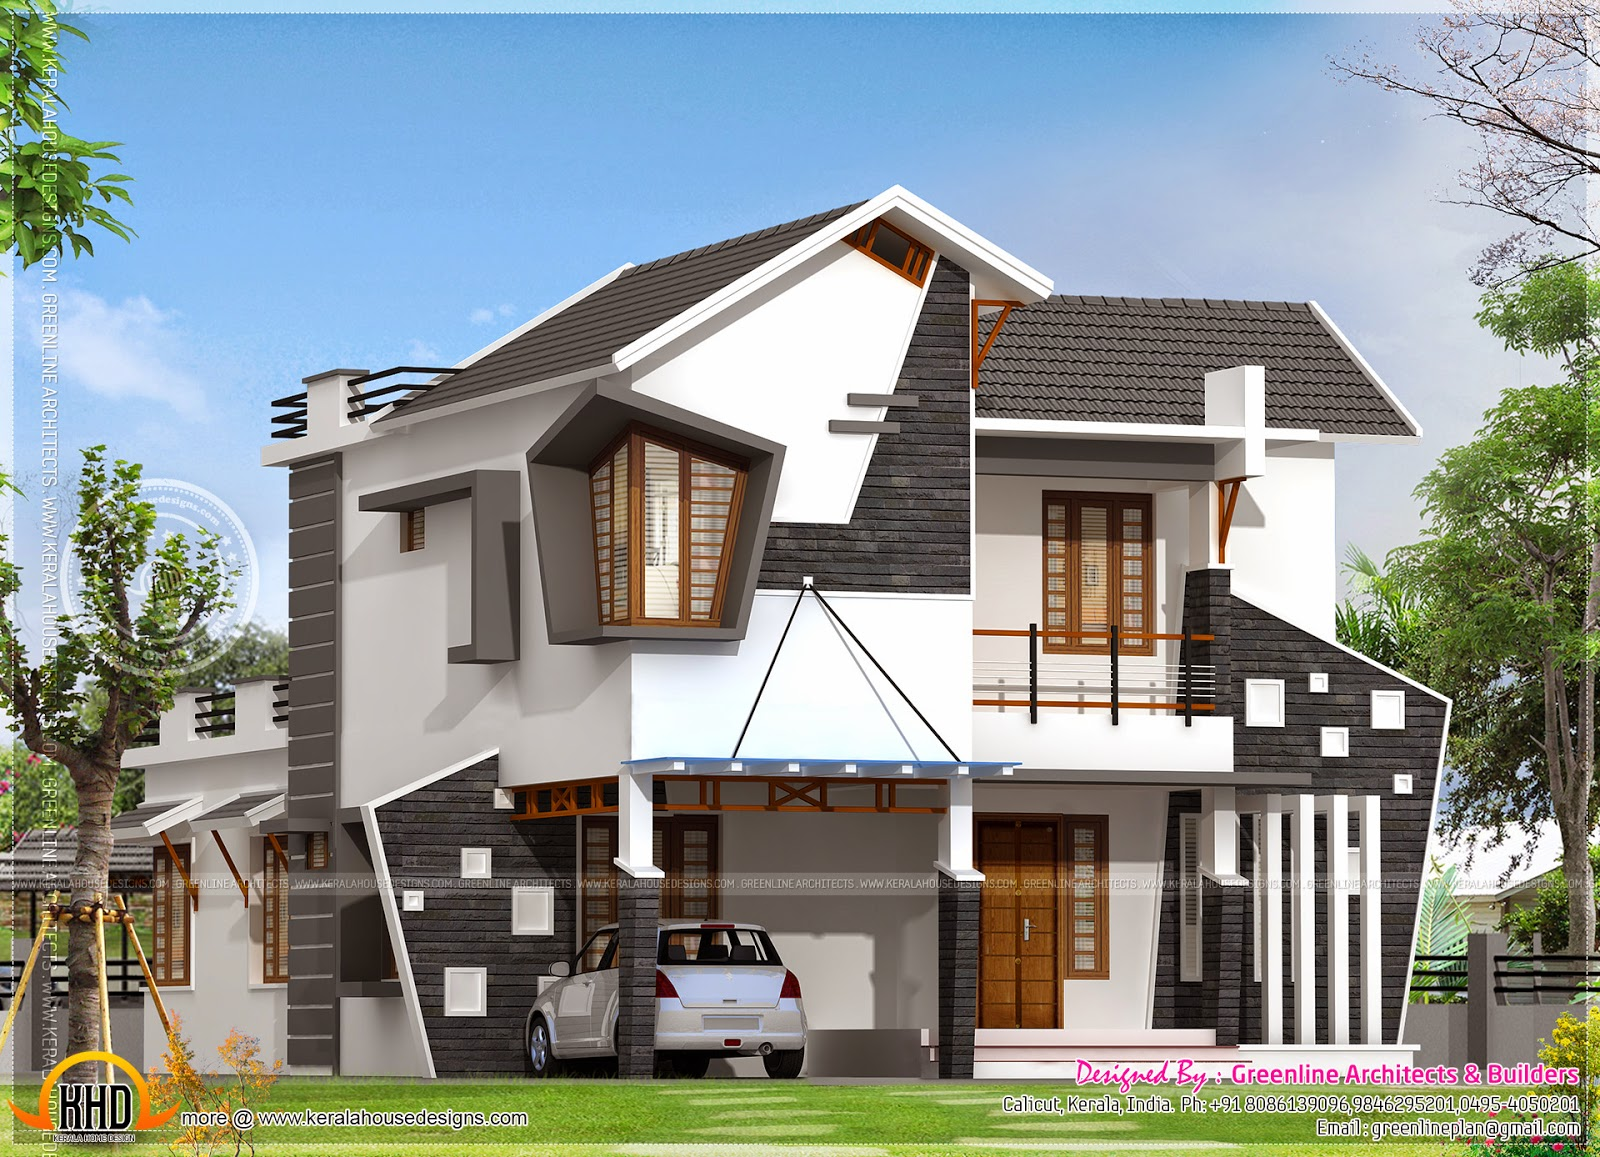 Unique house exterior in 2154 square feet kerala home for Interesting house designs